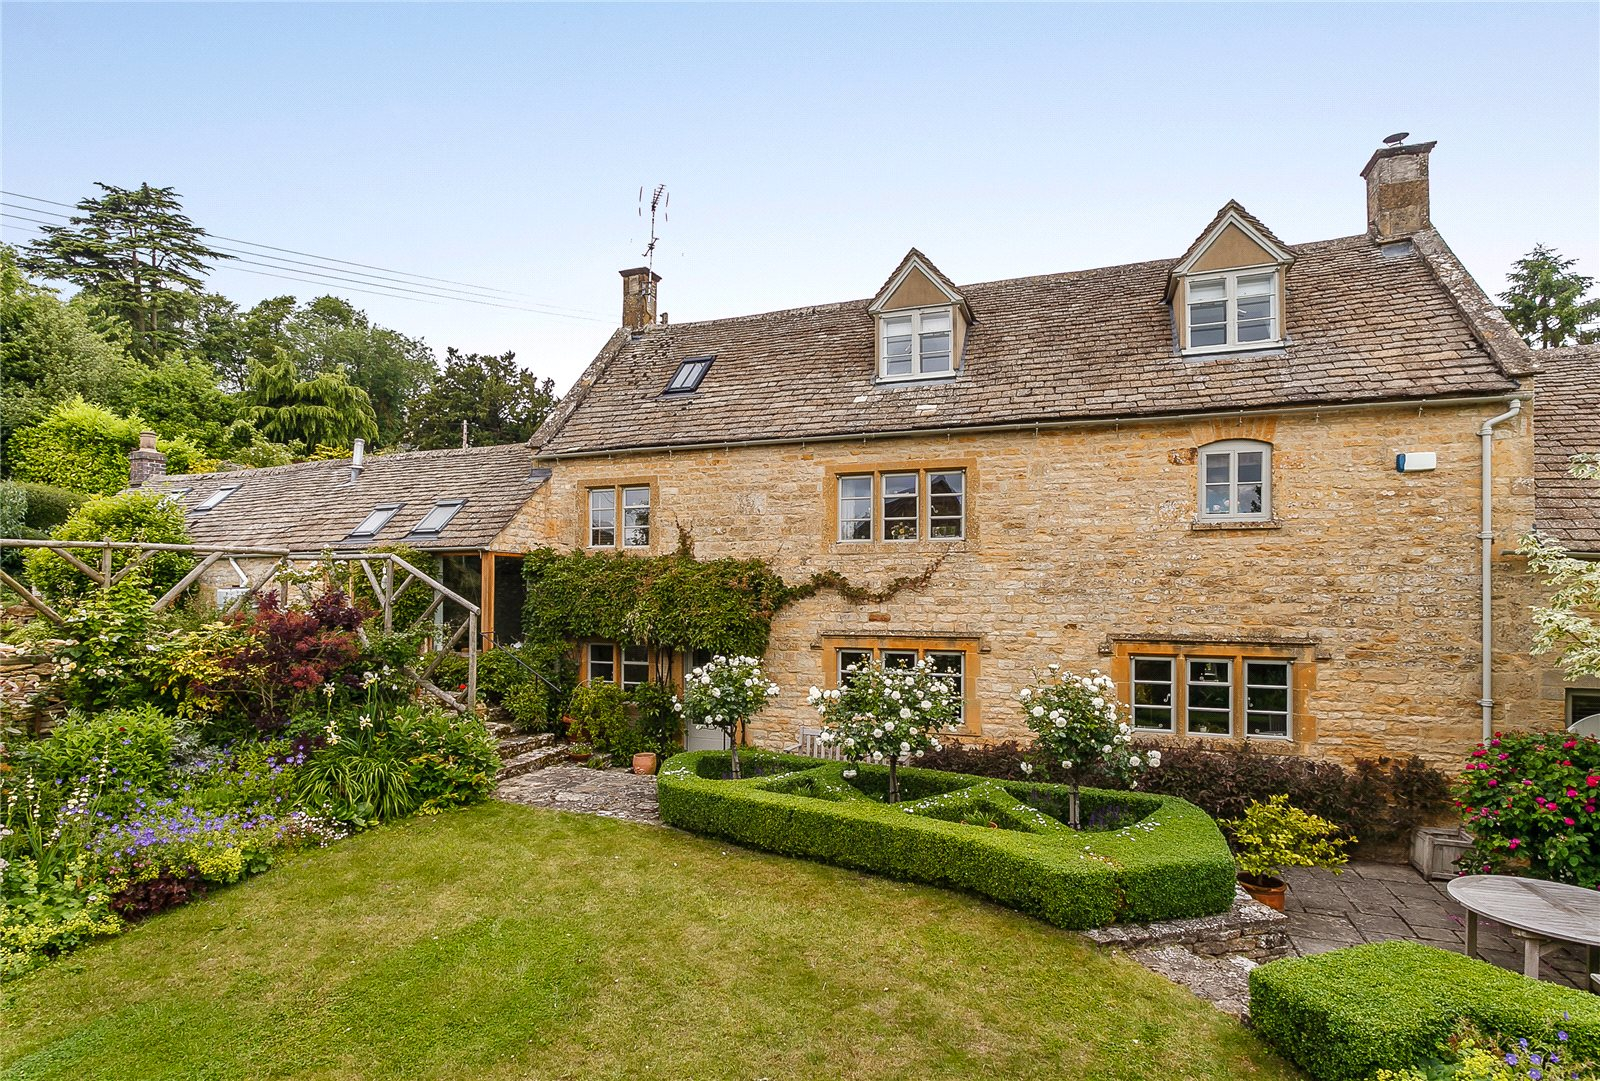 一戸建て のために 売買 アット Banks Fee Lane, Longborough, Moreton-in-Marsh, Gloucestershire, GL56 Moreton In Marsh, イギリス